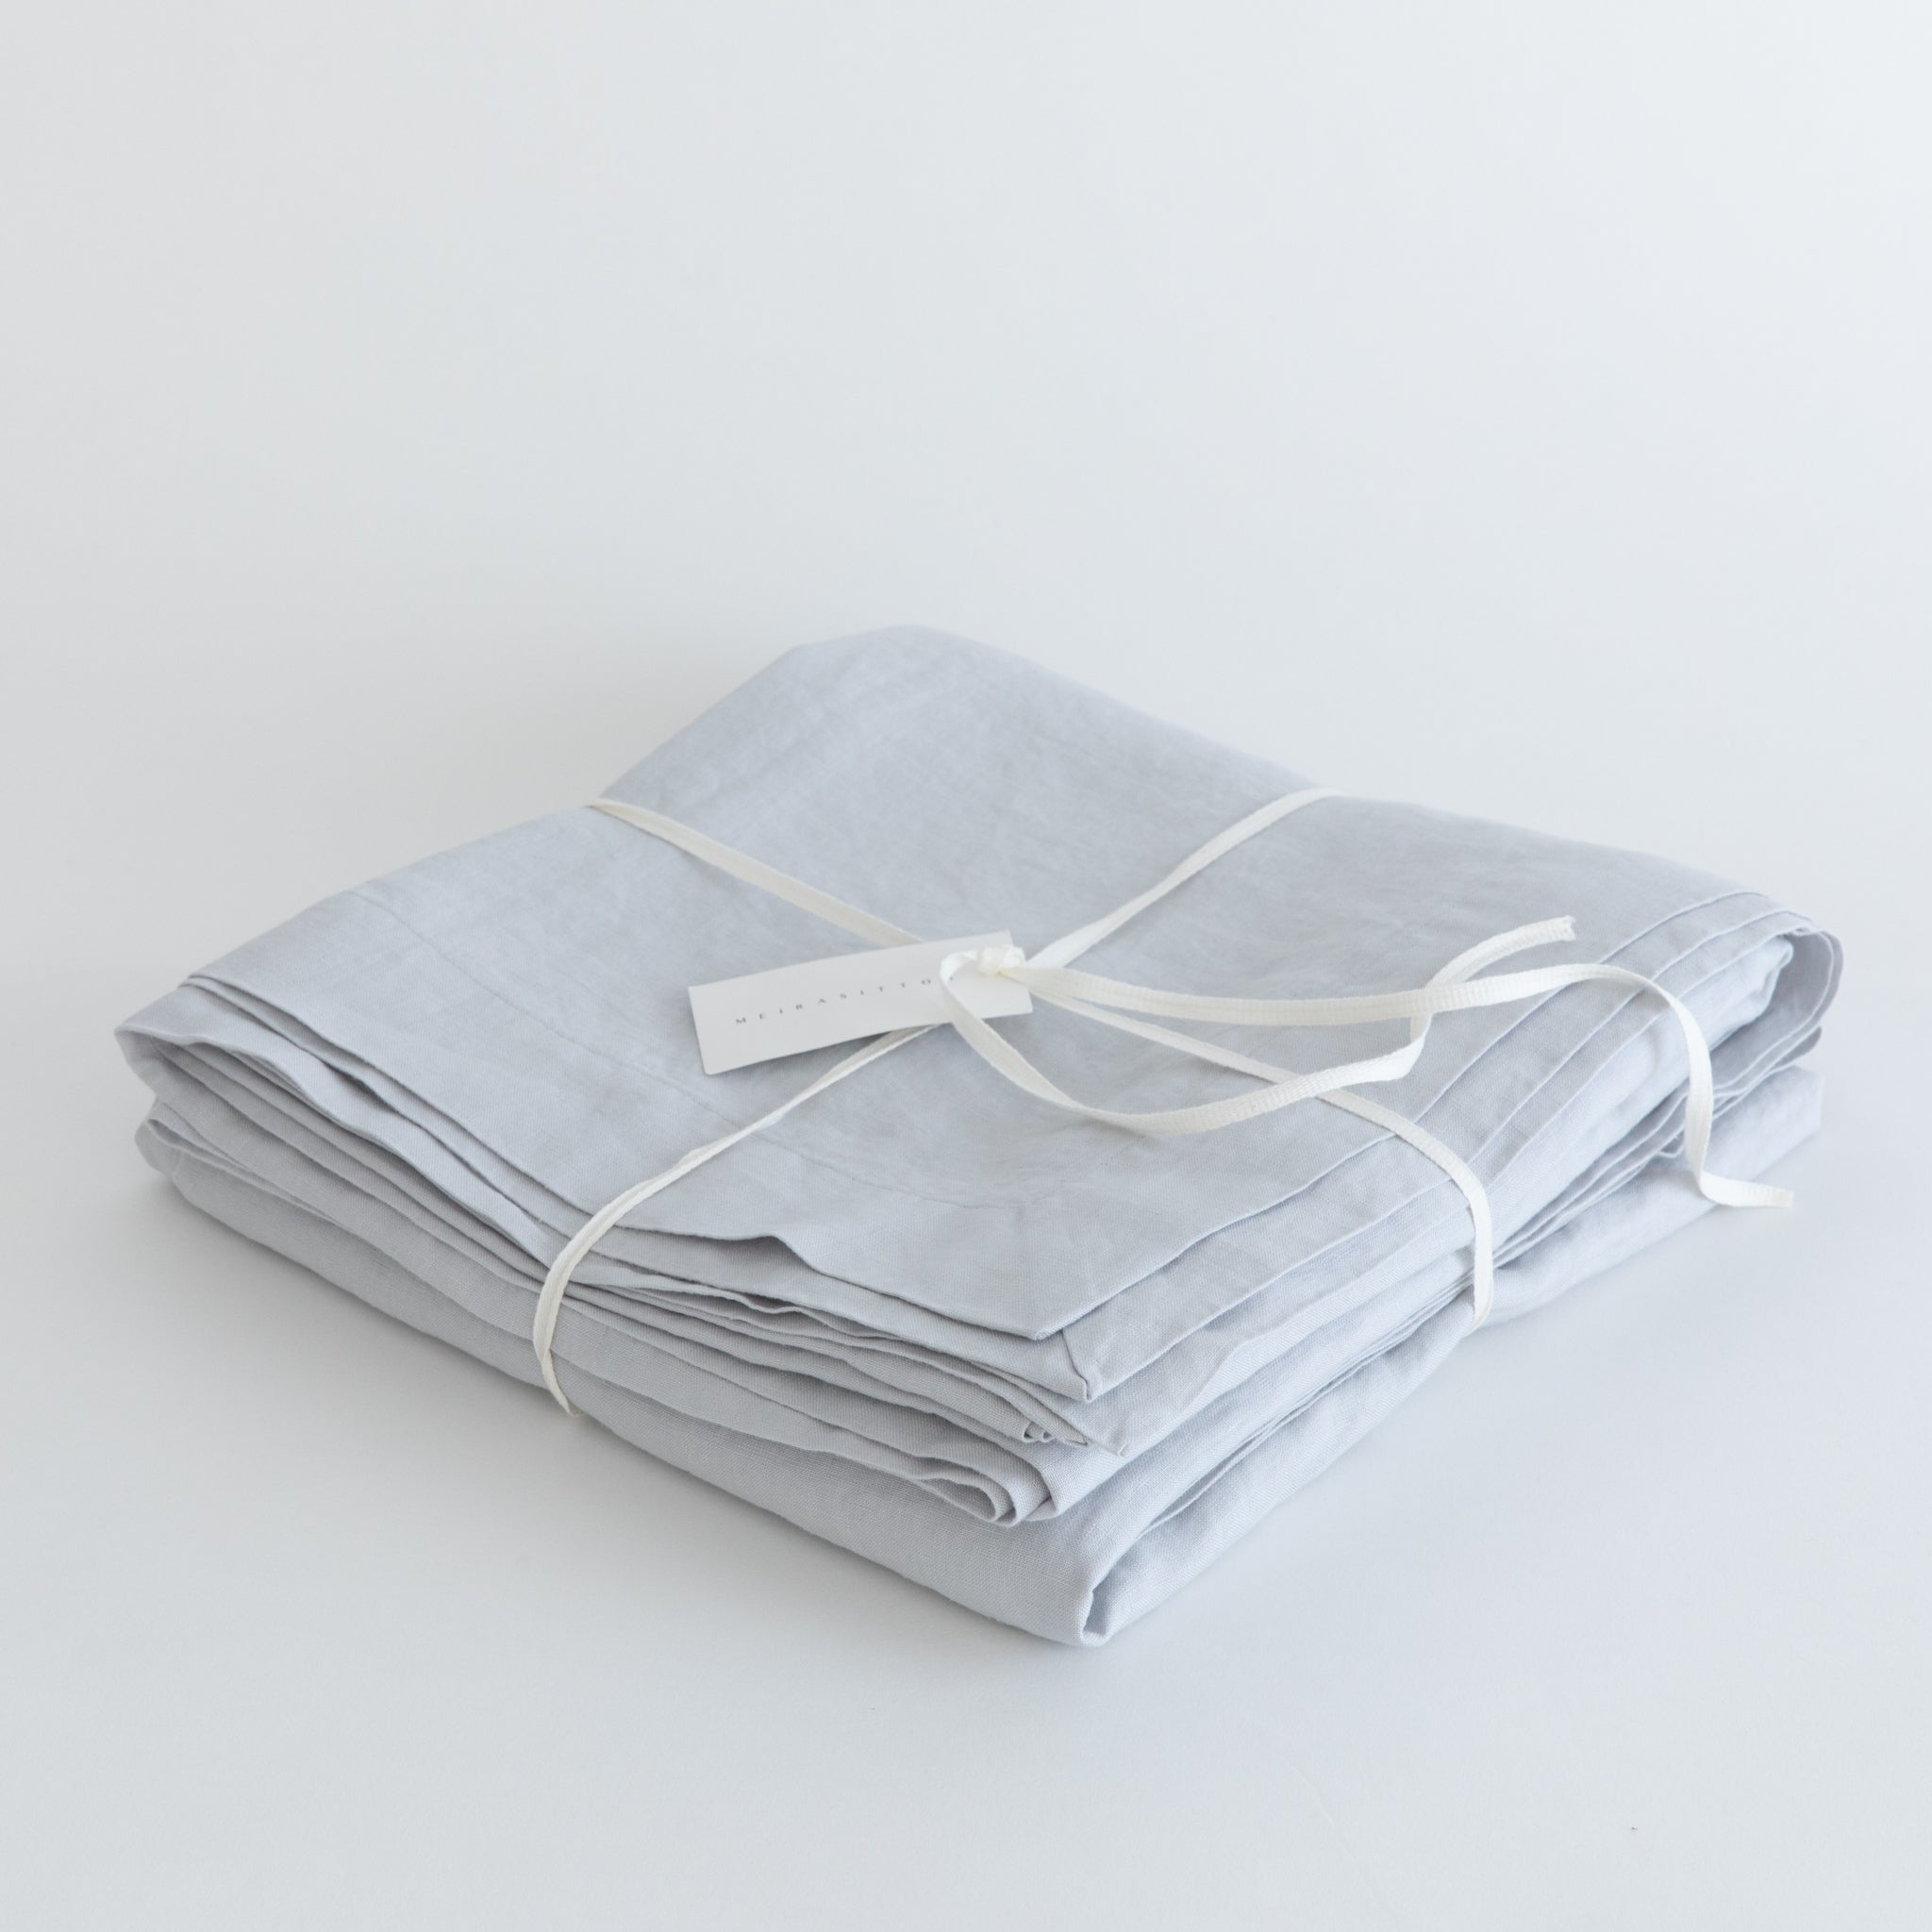 TABLECLOTHS, FRENCH GRAY